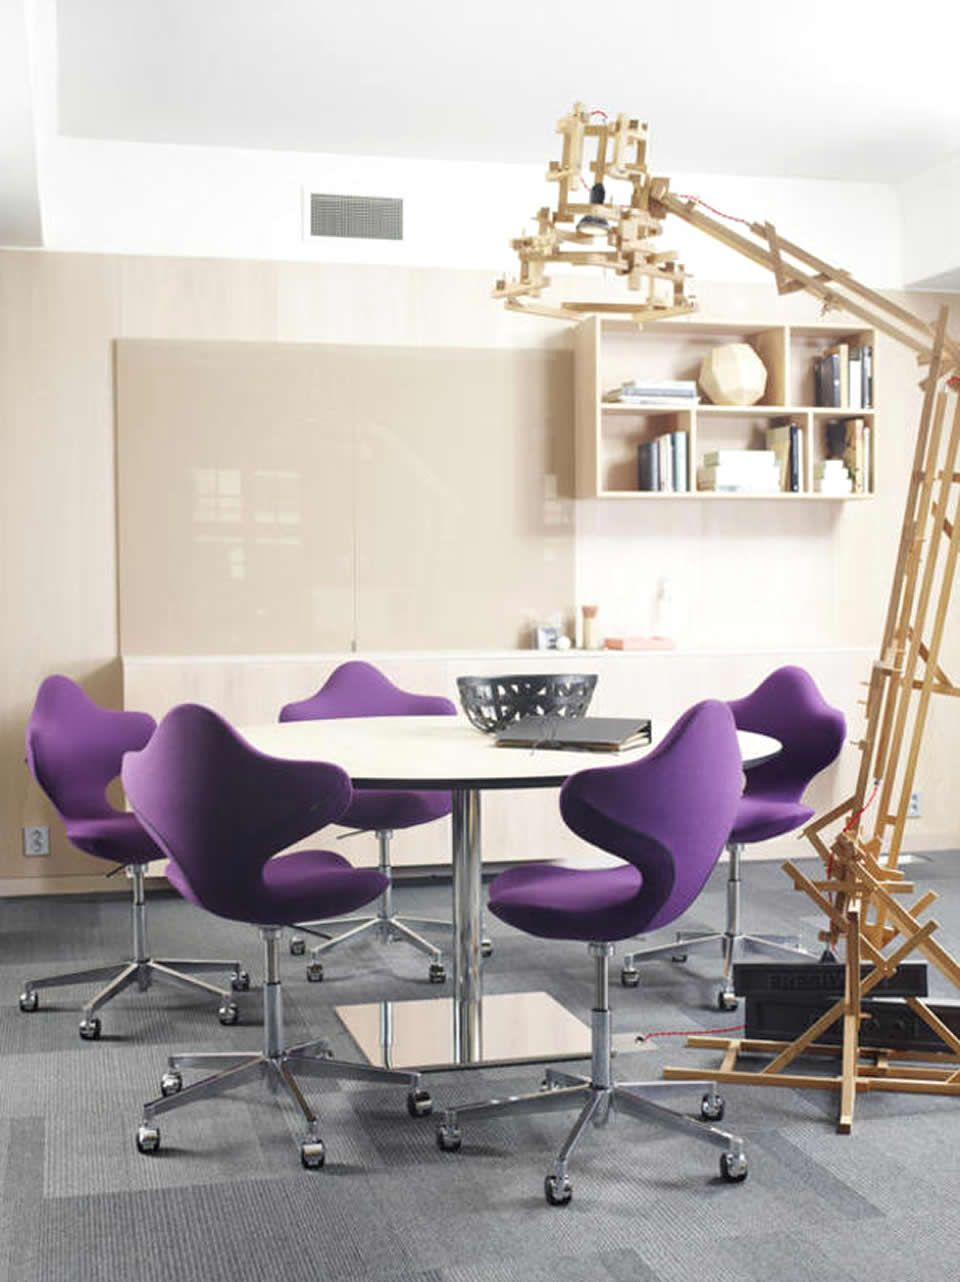 Small Office Room Designs Small Office Meeting Room Interior Design With Purple Active Chair